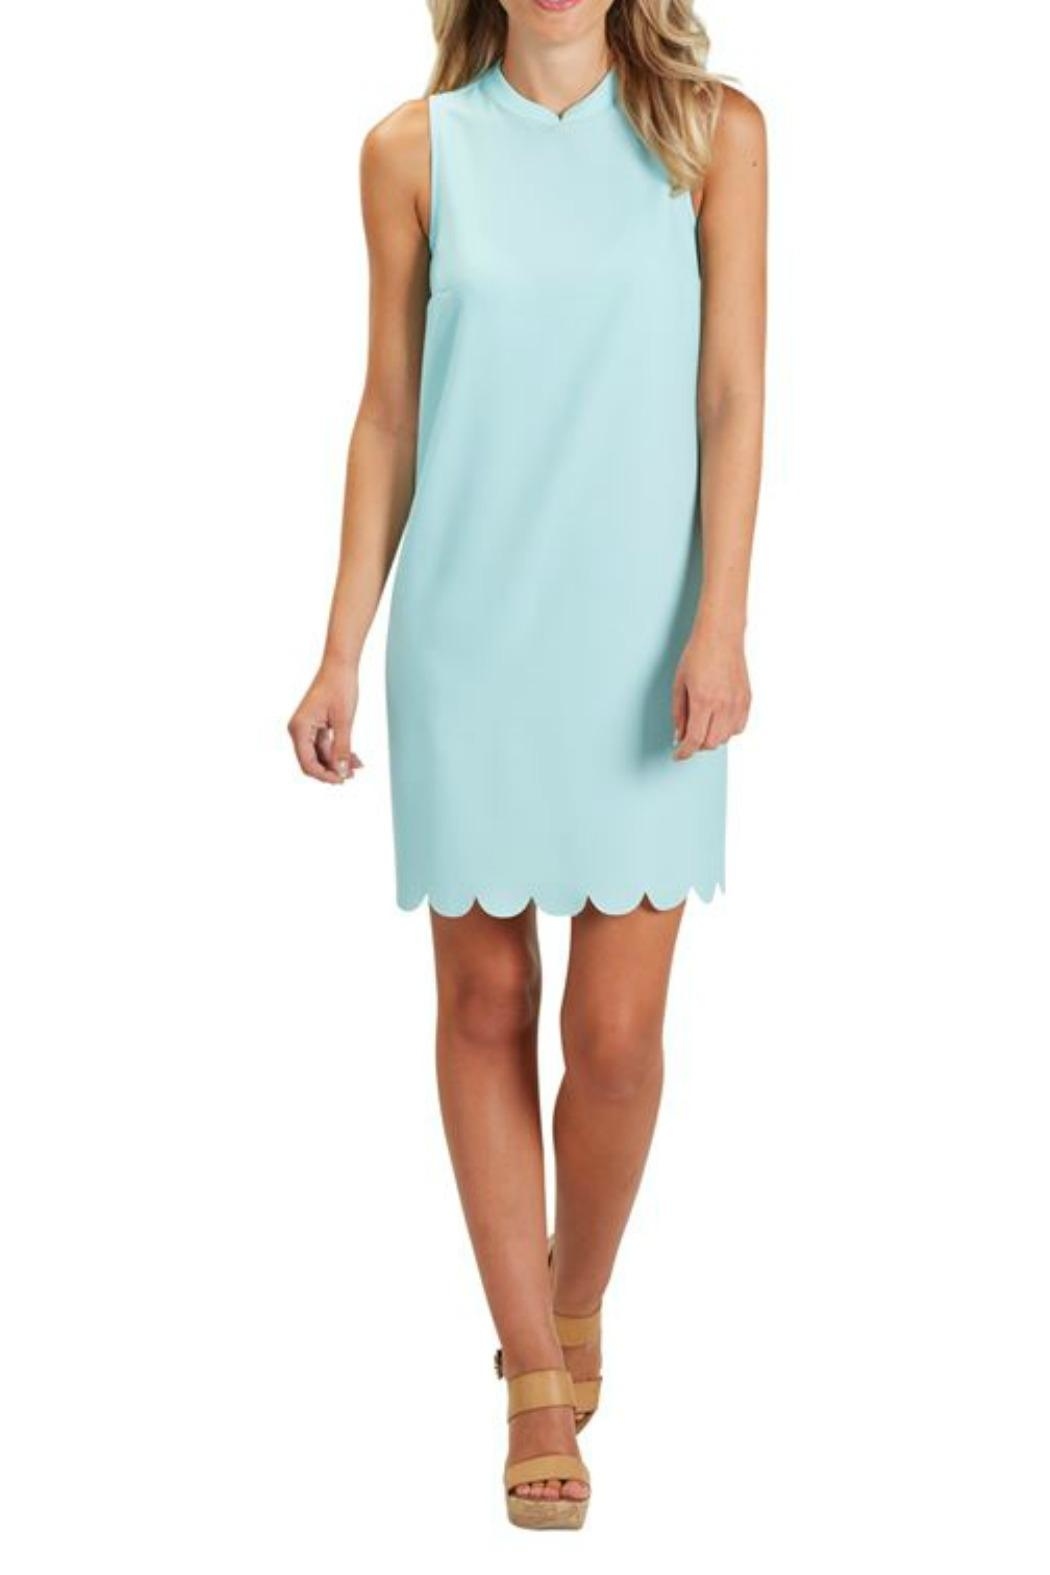 The Gift Pod Blue Scallop Dress - Main Image